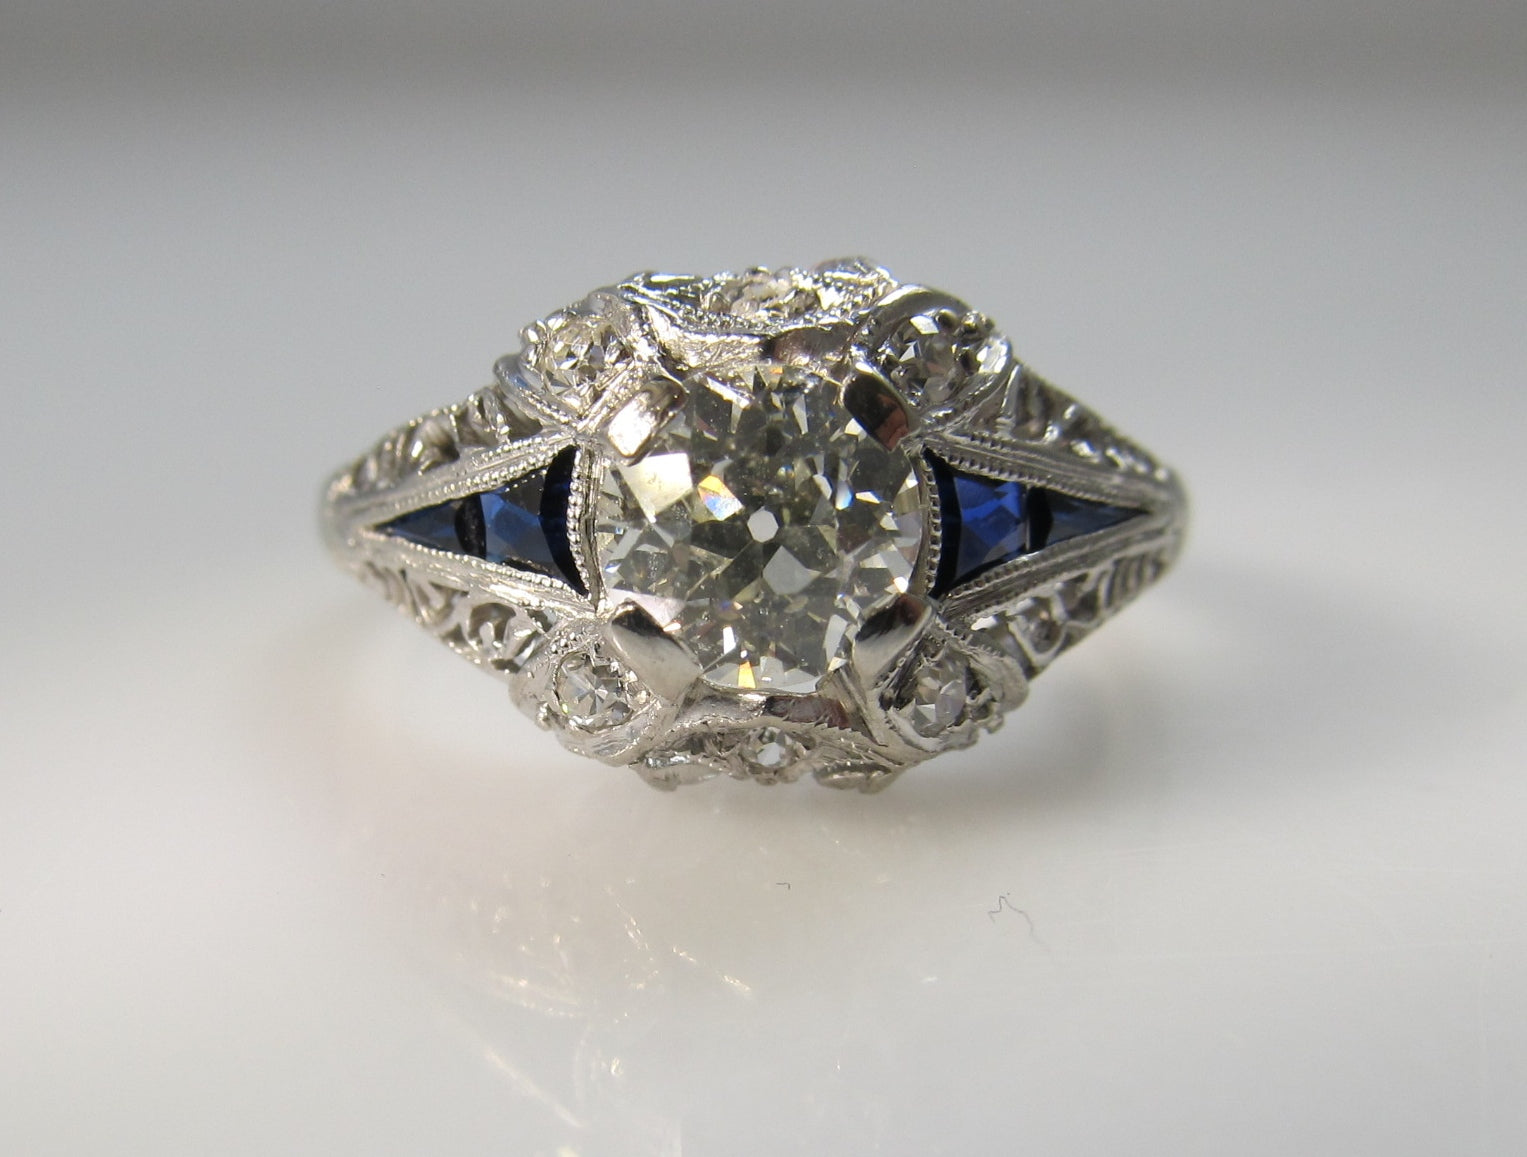 Antique platinum filigree ring with sapphires and a .75ct diamond, circa 1920.